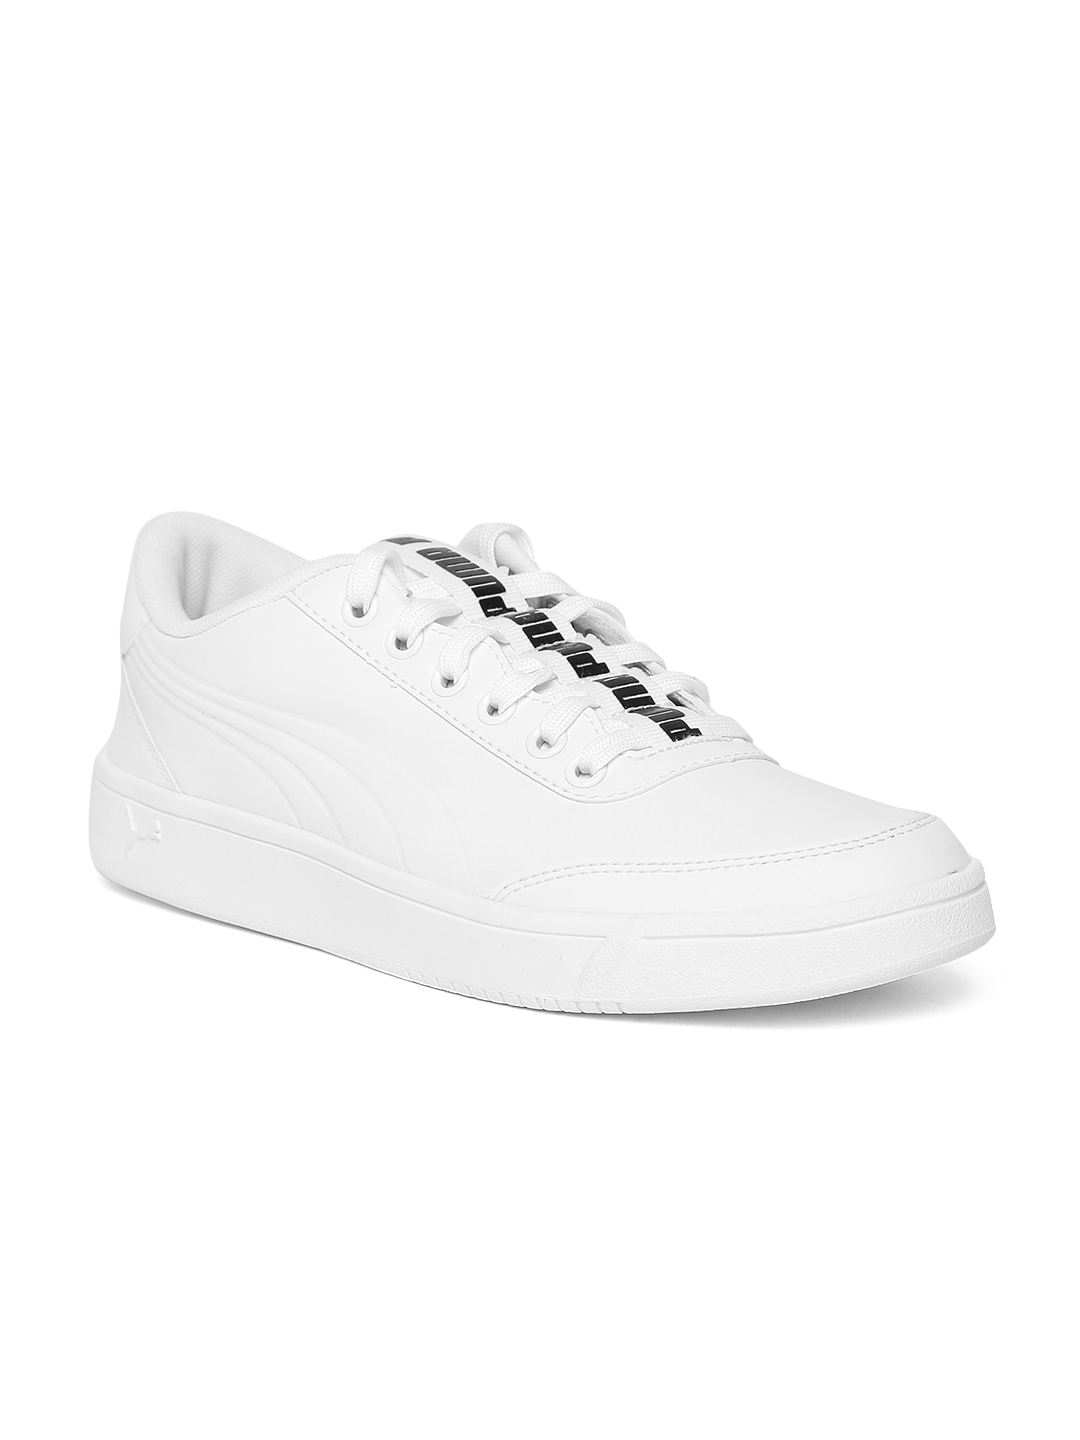 de2ffb052e65 Buy Puma Men White Court Breaker Bold Leather Sneakers - Casual ...